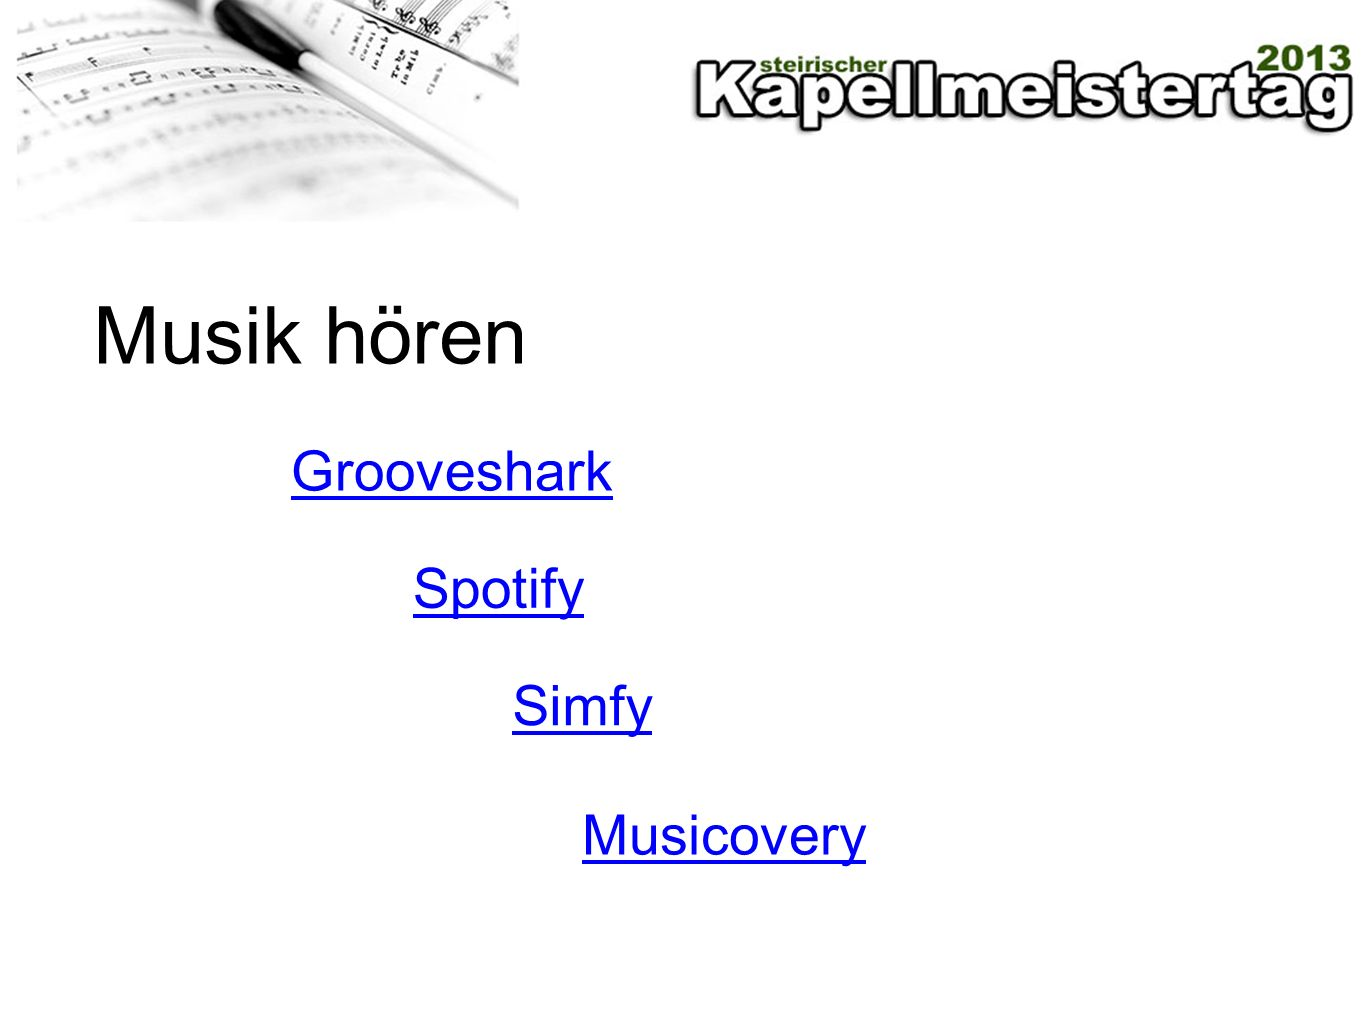 Musik hören Grooveshark Spotify Simfy Musicovery